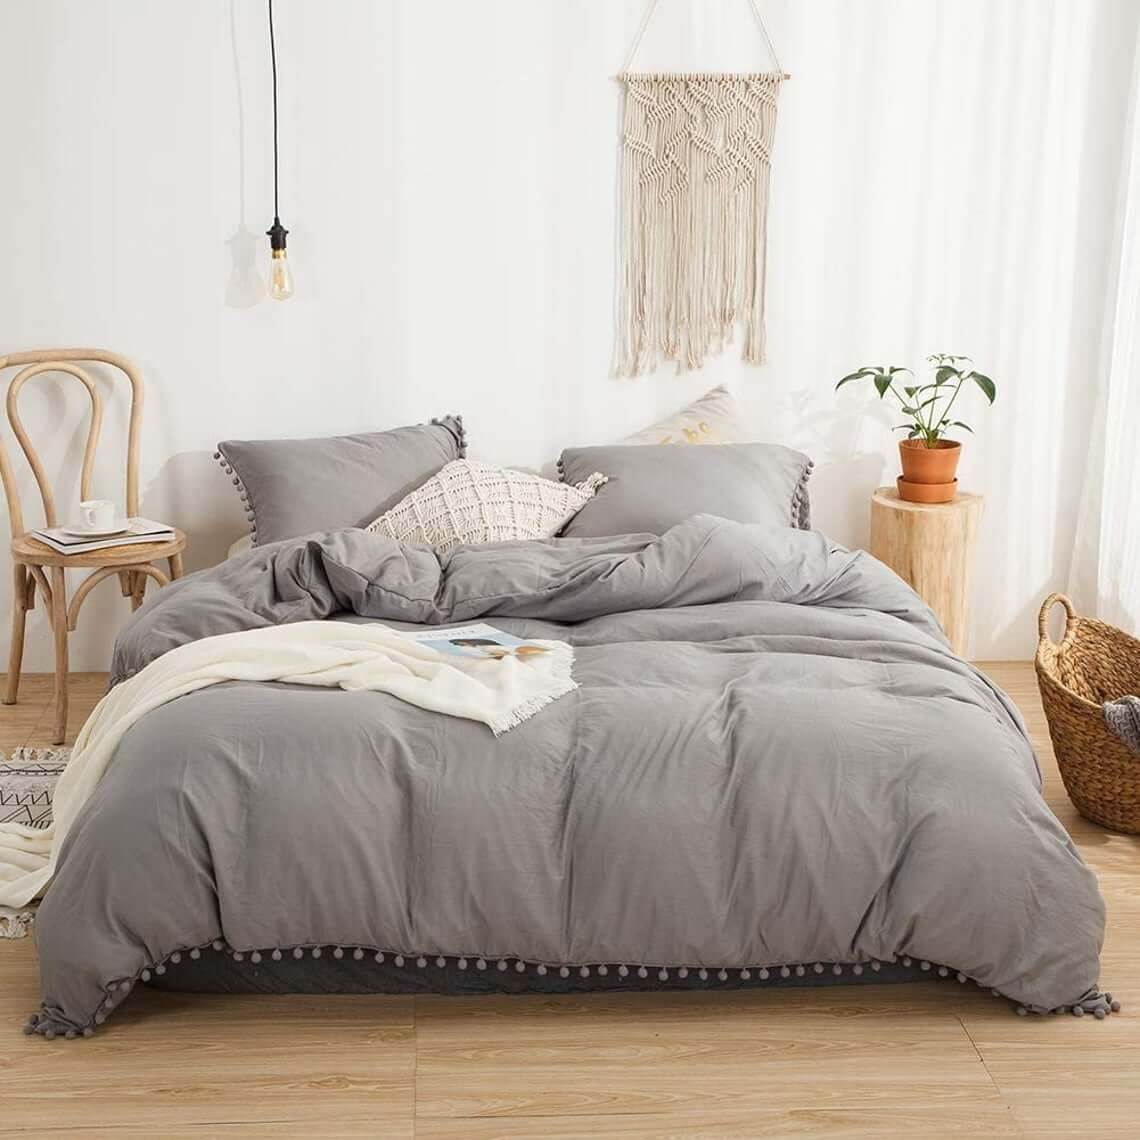 Farmhouse bedding set ideas new style